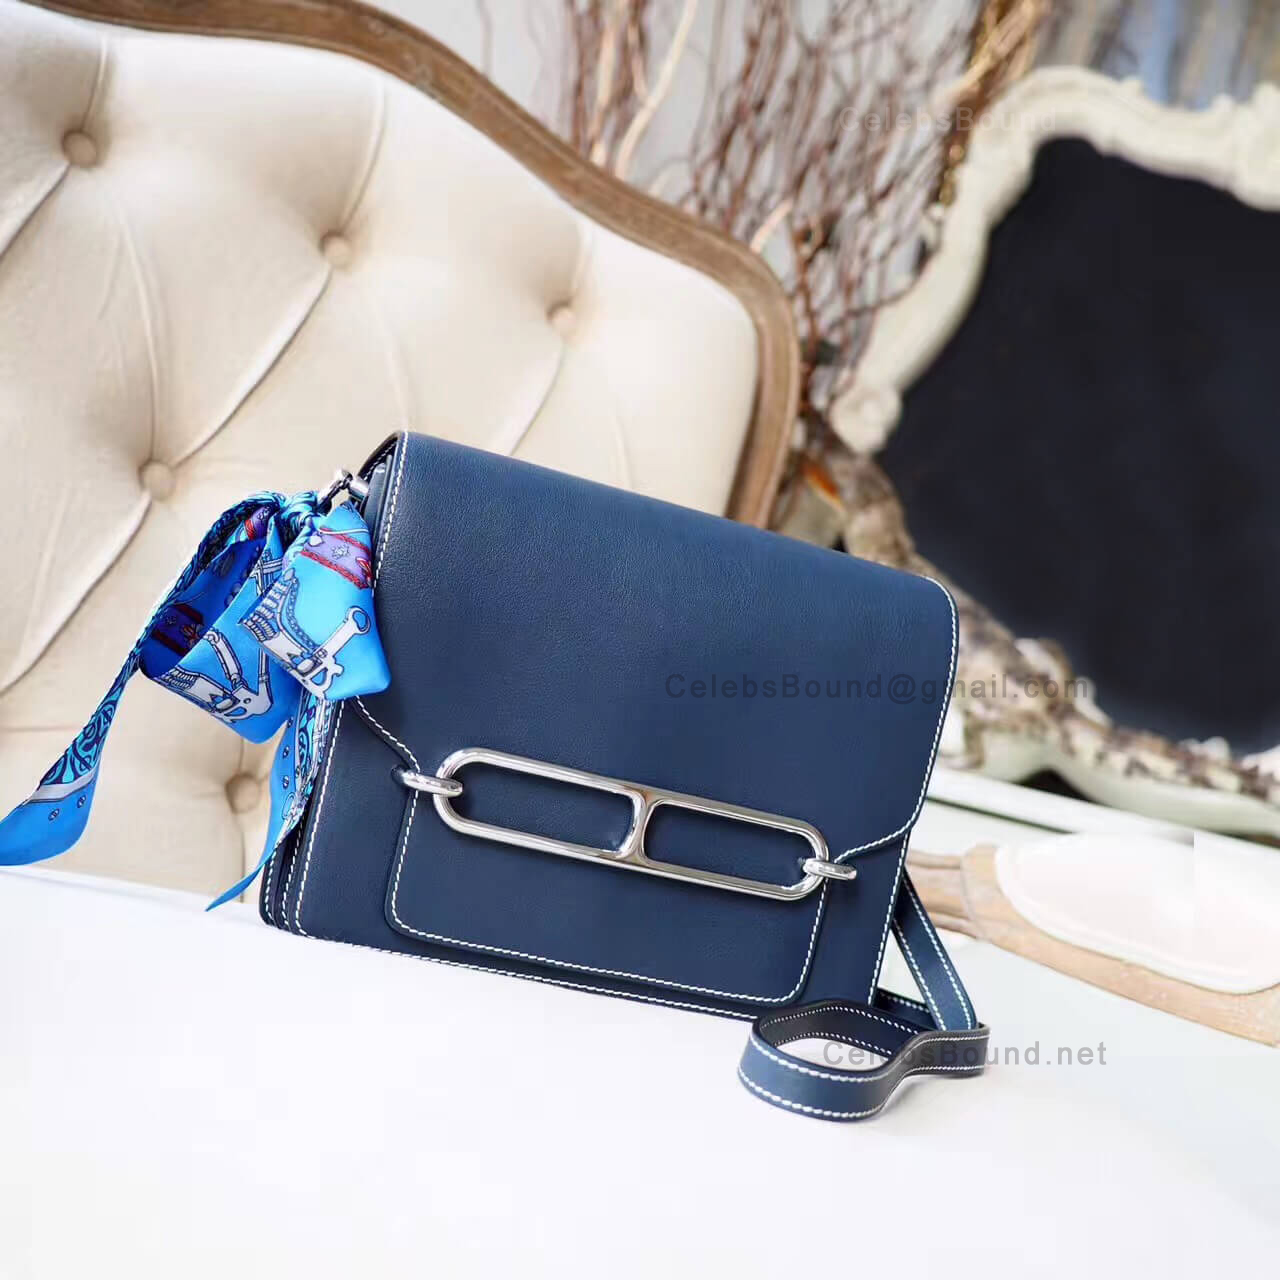 Hermes Roulis 23 Bag White Stitching in 2z Blue Nuit Evercolor PHW